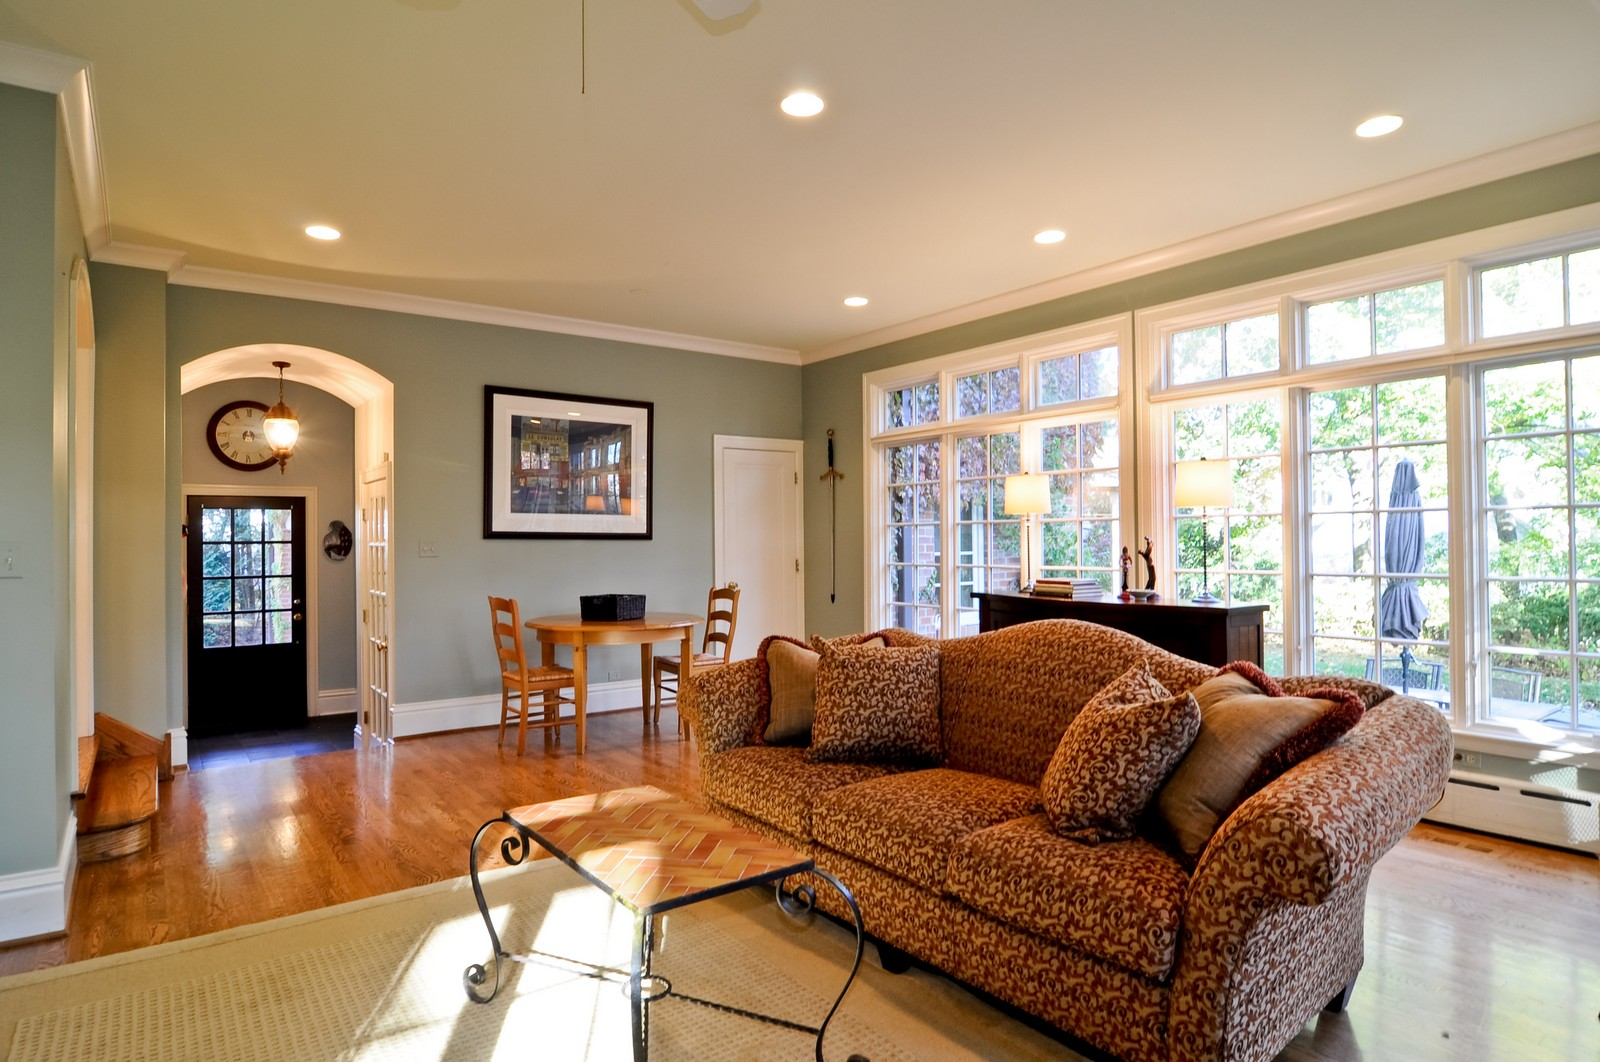 Real Estate Photography - 685 N. Forest Avenue, Glen Ellyn, IL, 60137 - Location 2